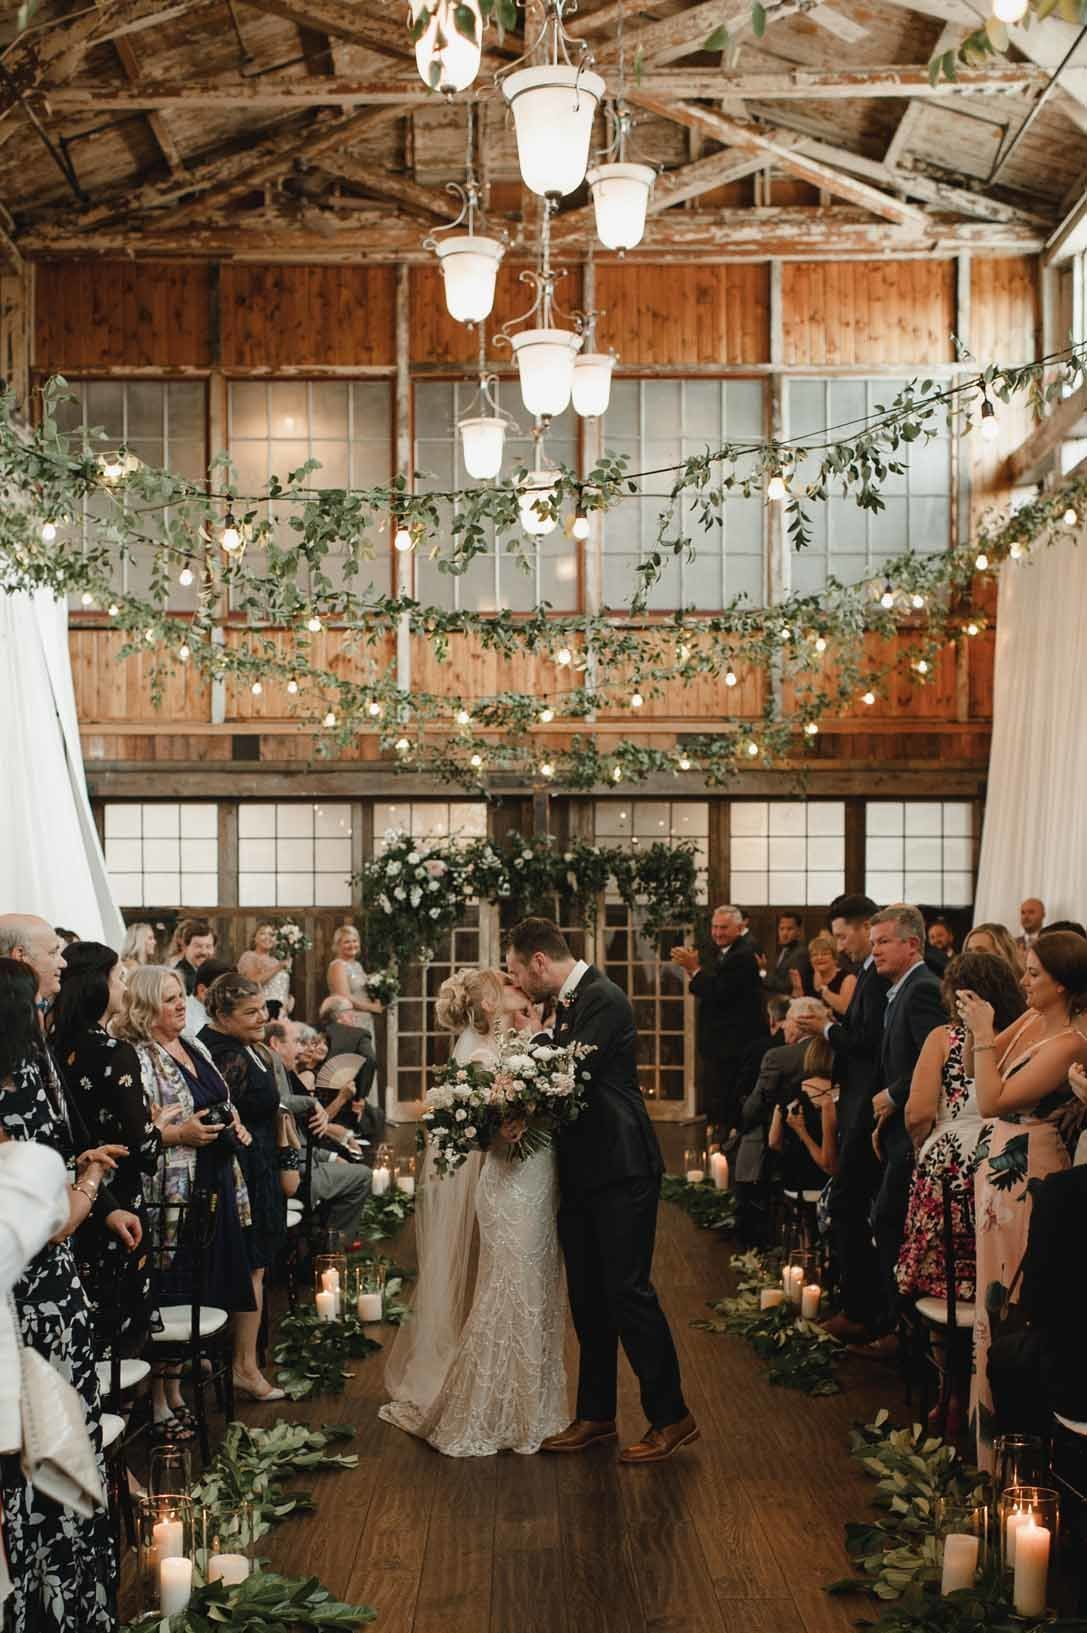 Romantic wedding ceremony space filled with green and candlelight perfectly frame our bride and groom.